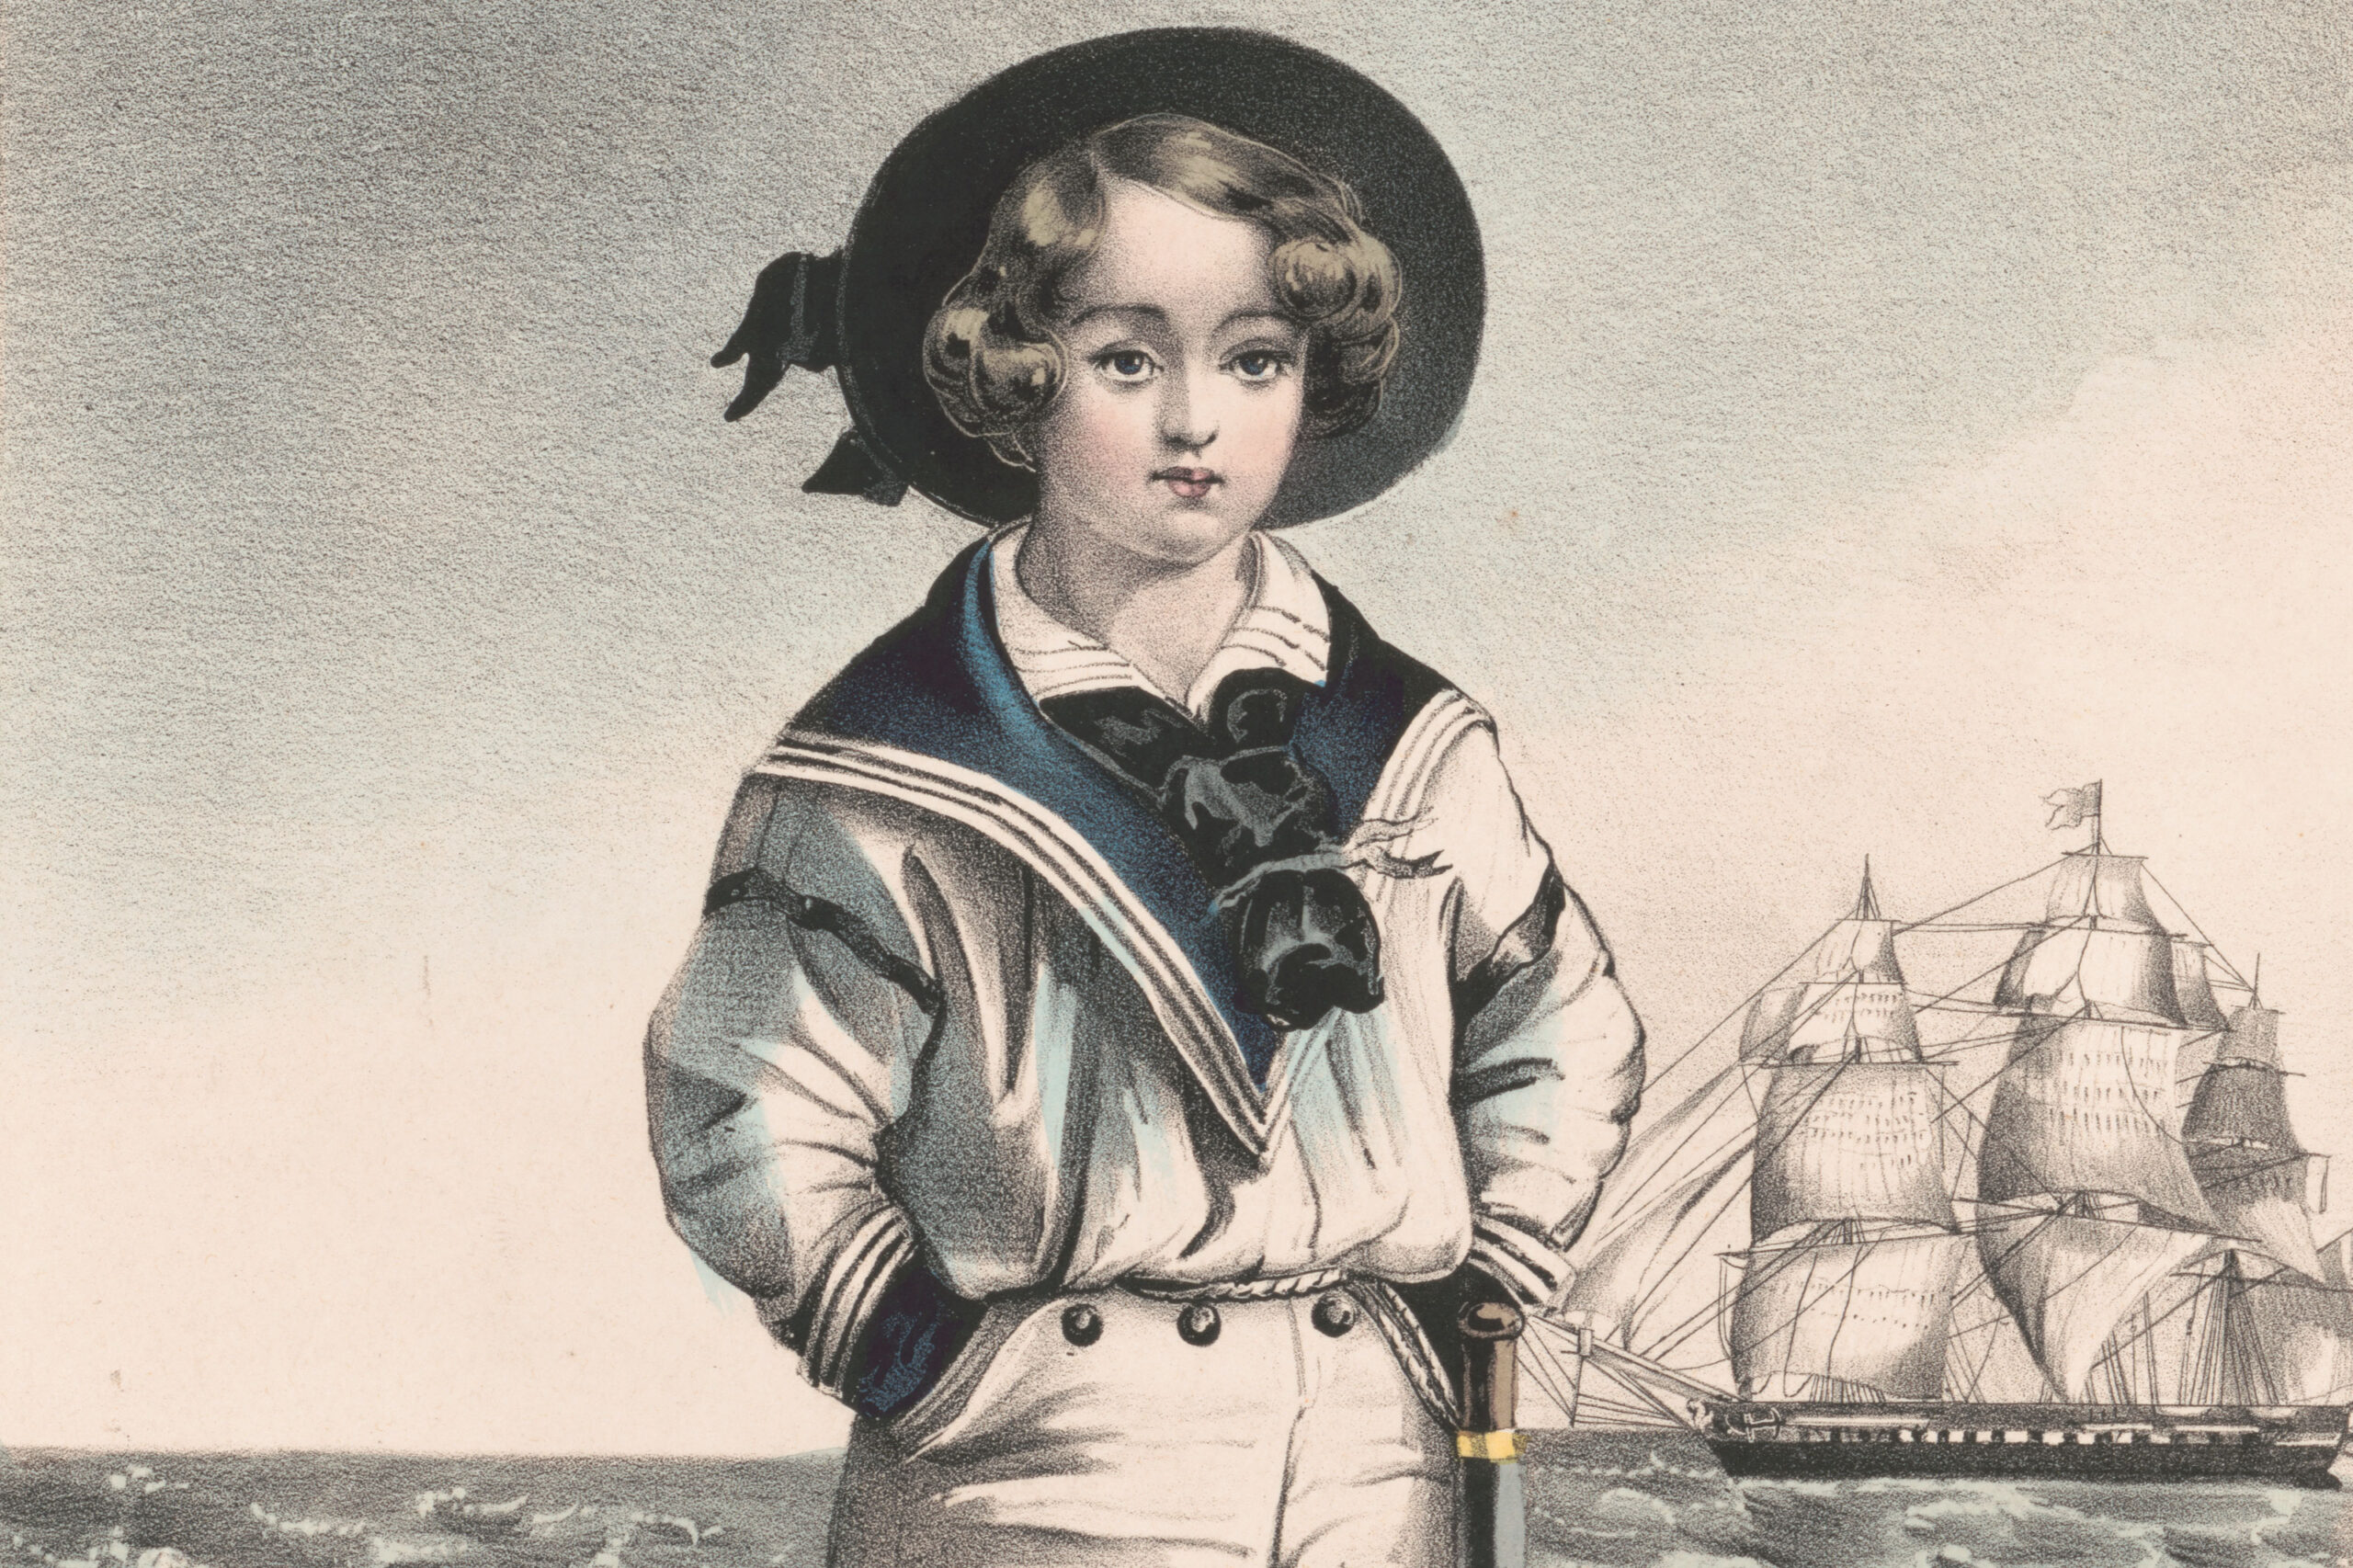 """The young sailor,"" a hand-colored lithograph created in New York, circa 1849, by N. Currier."